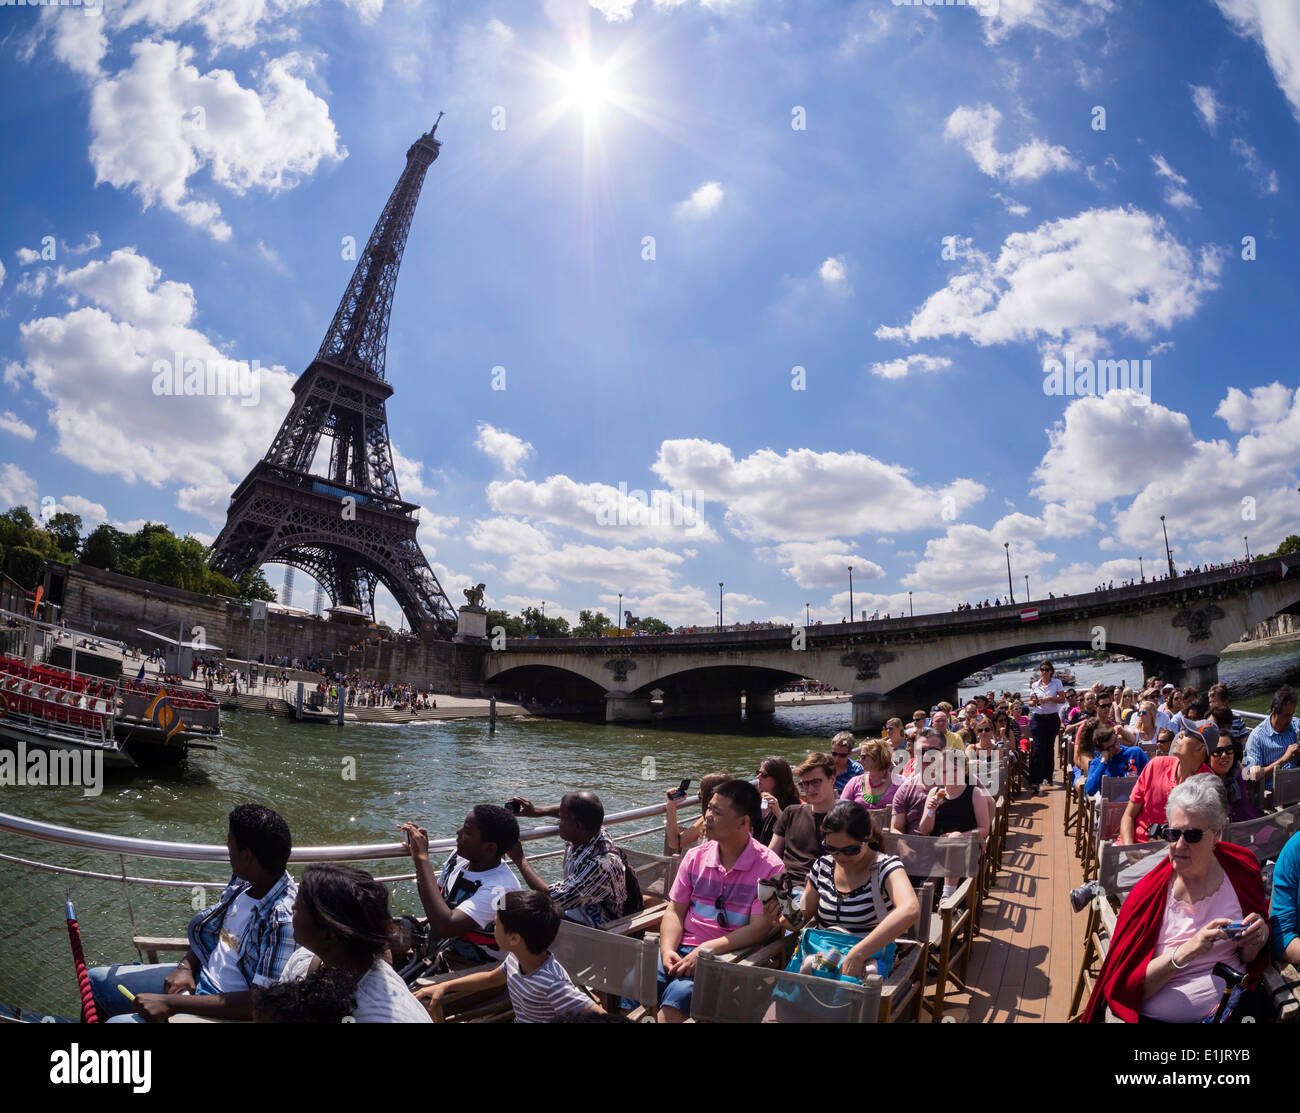 Tourists pass the Paris Eiffel Tower on a boat on the Seine river. - Stock Image